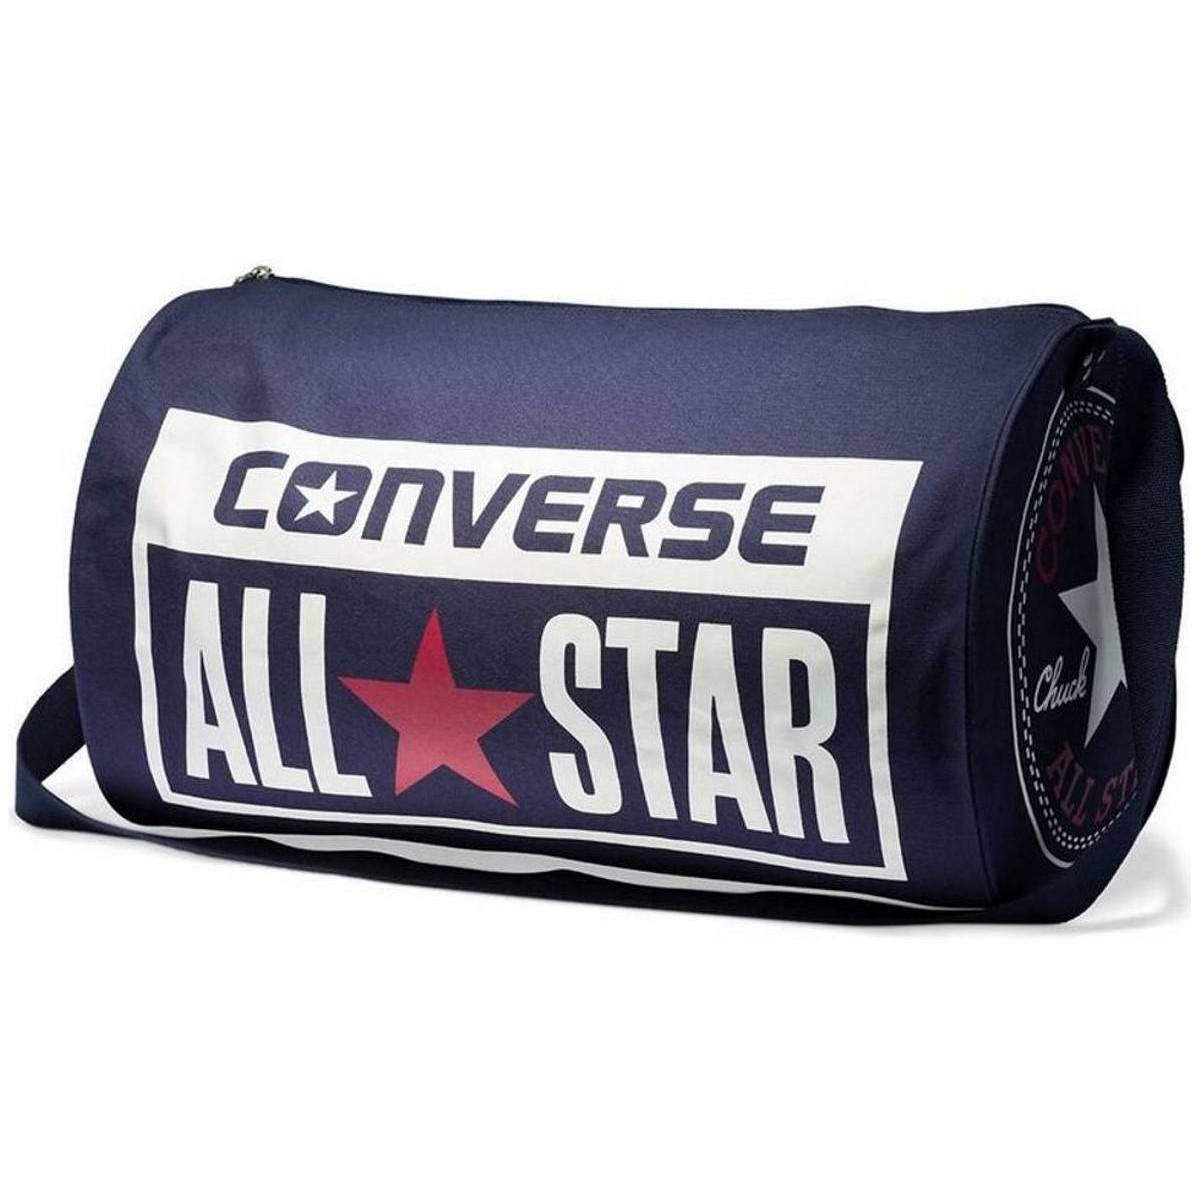 Converse Chuck Taylor All Star Legacy Duffle Bag - Navy Men s Sports ... 9bd2ccef5d69f